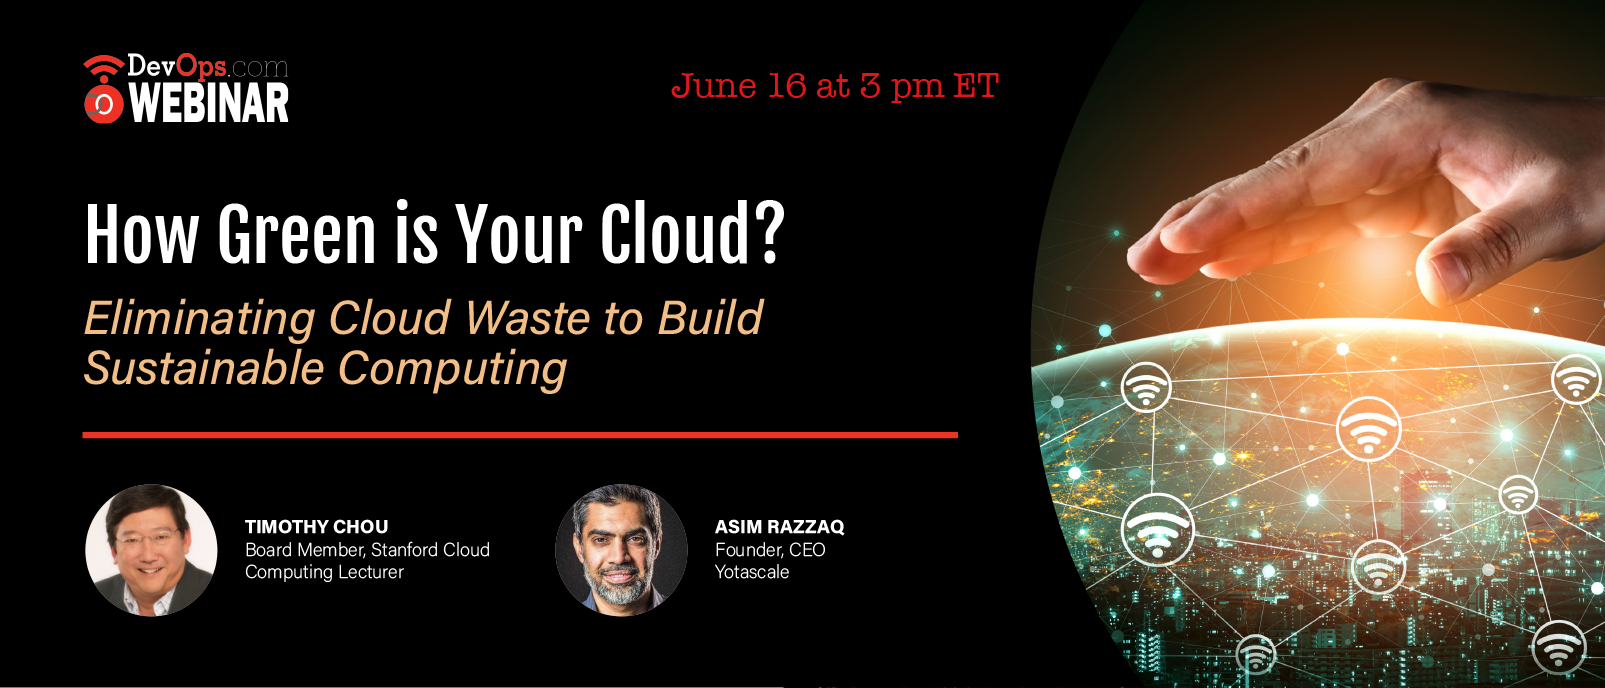 How Green is Your Cloud? Eliminating Cloud Waste to Build Sustainable Computing